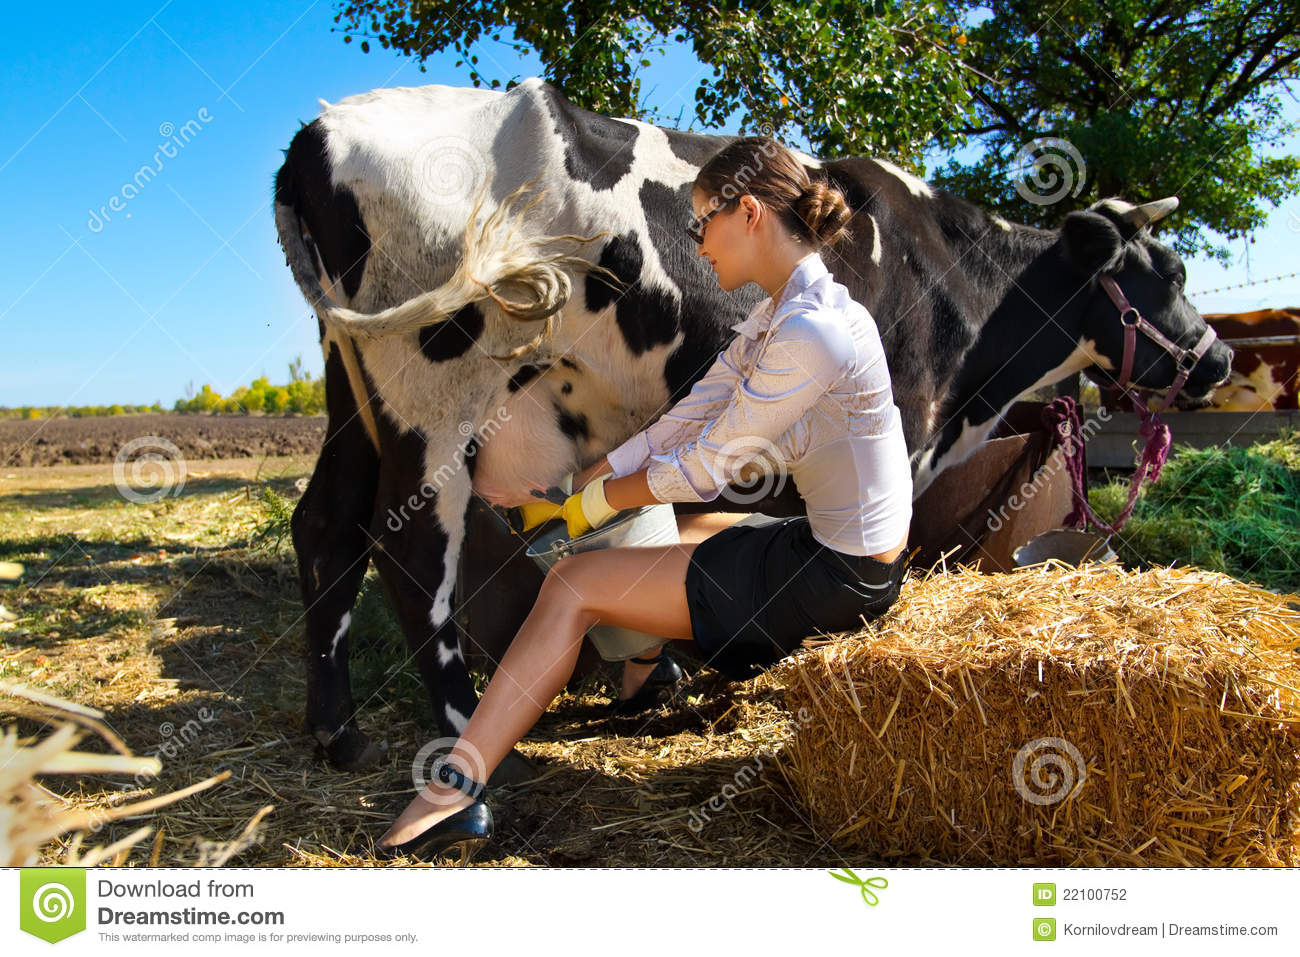 Woman milking cow stock photo. Image of agronomy, bovine ...